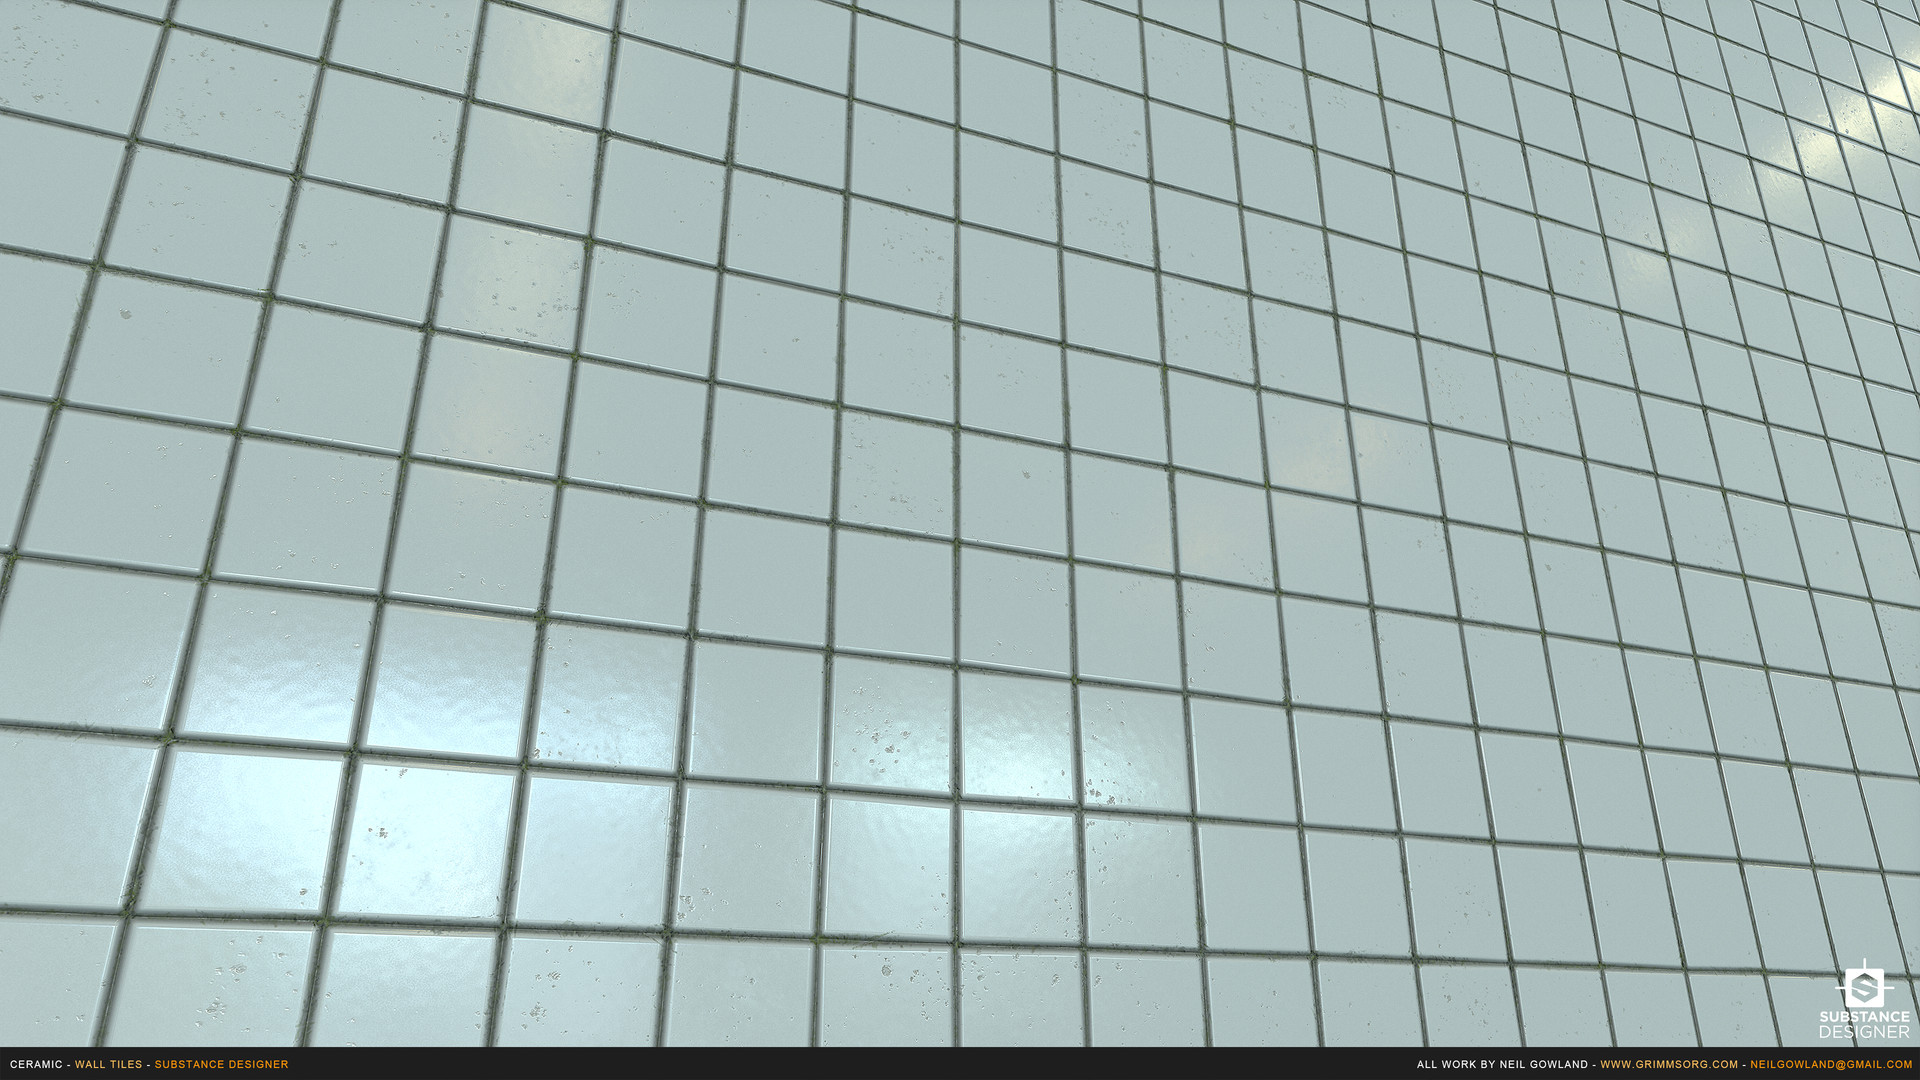 Artstation ceramic wall tiles substance designer material scroll to see more dailygadgetfo Images